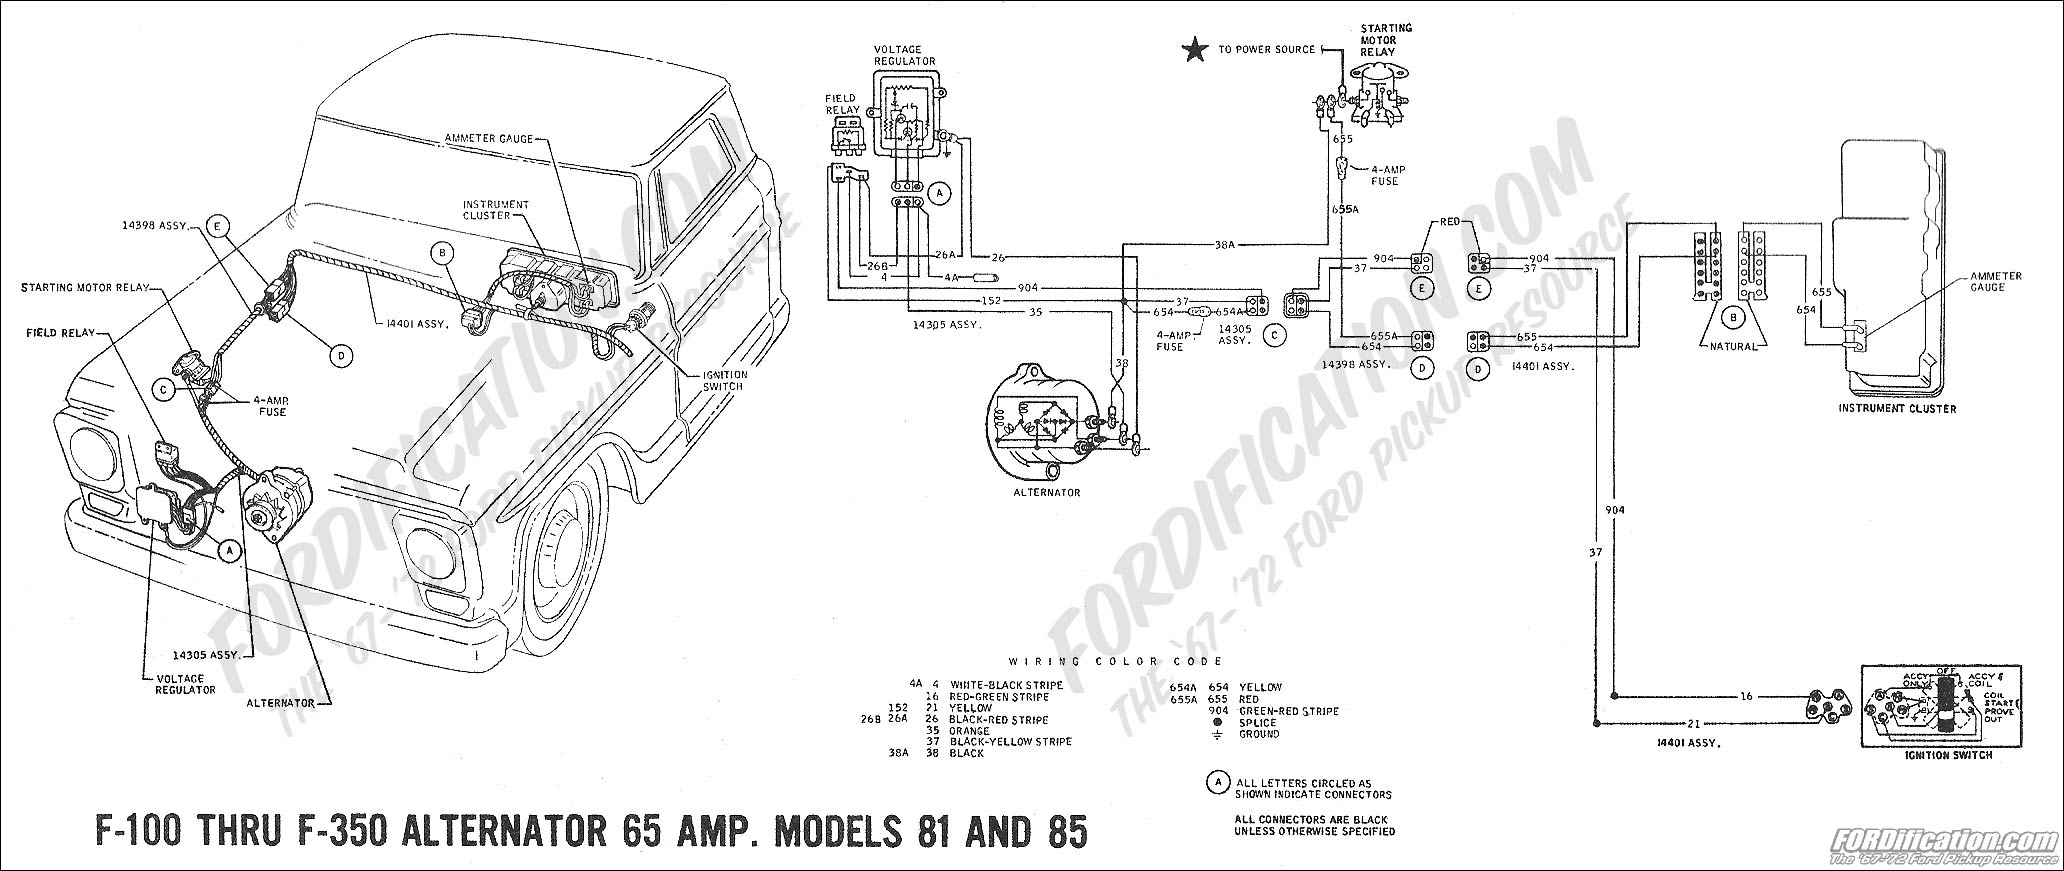 1976 Ford F150 Wiring Diagram from www.fordification.com